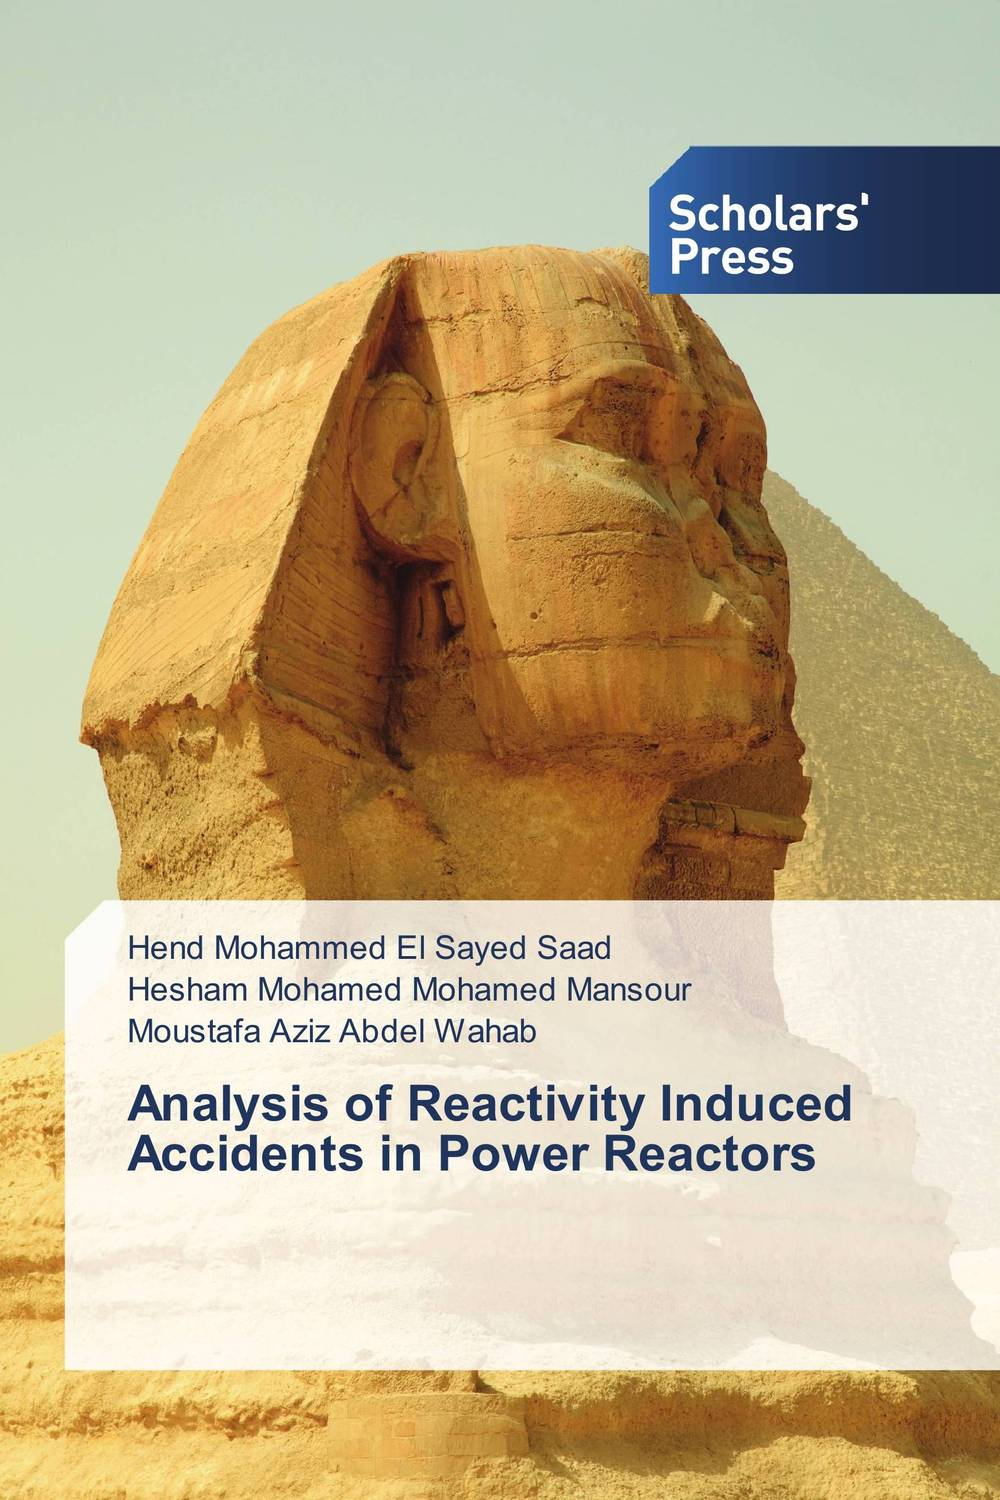 Analysis of Reactivity Induced Accidents in Power Reactors belousov a security features of banknotes and other documents methods of authentication manual денежные билеты бланки ценных бумаг и документов